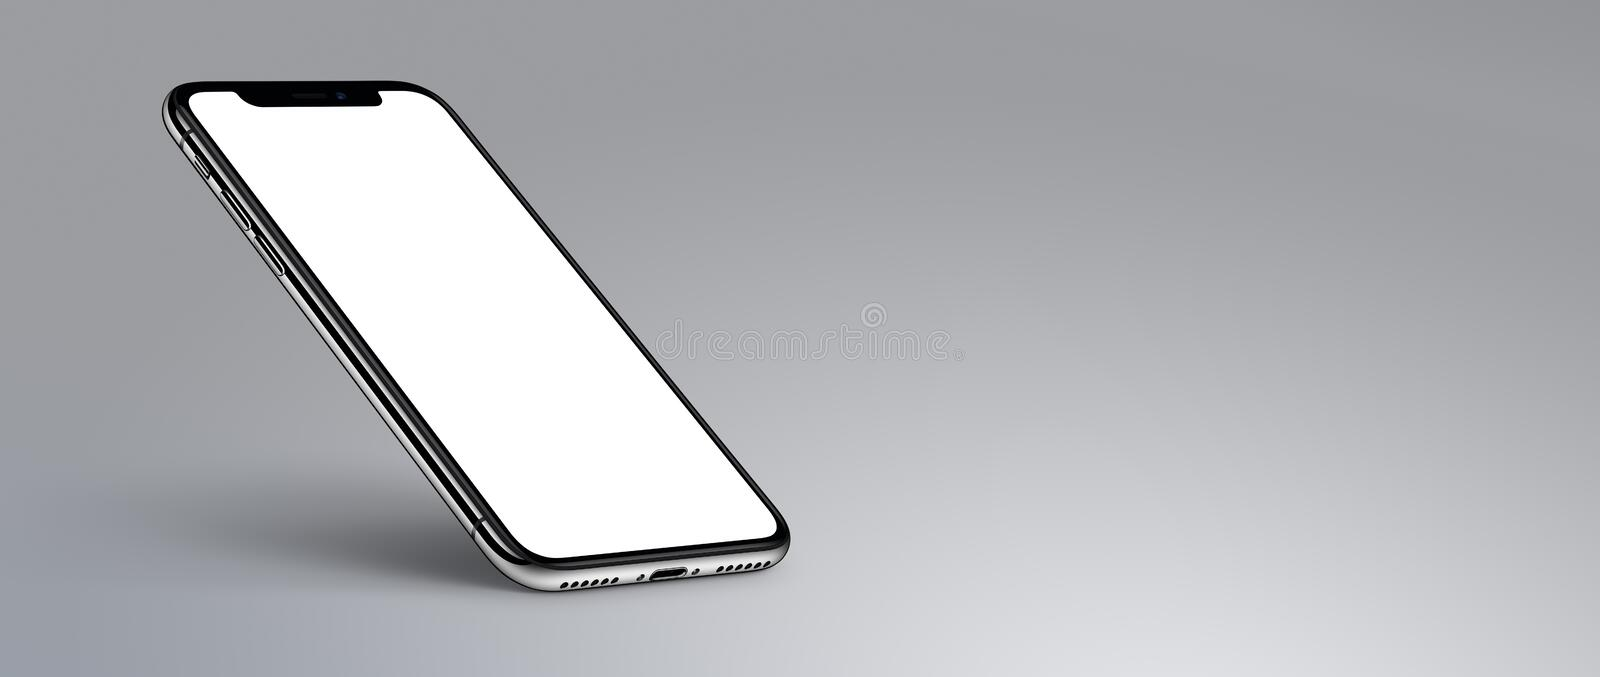 iPhone X. Perspective smartphone mockup with shadow on gray background banner with copyspace stock illustration